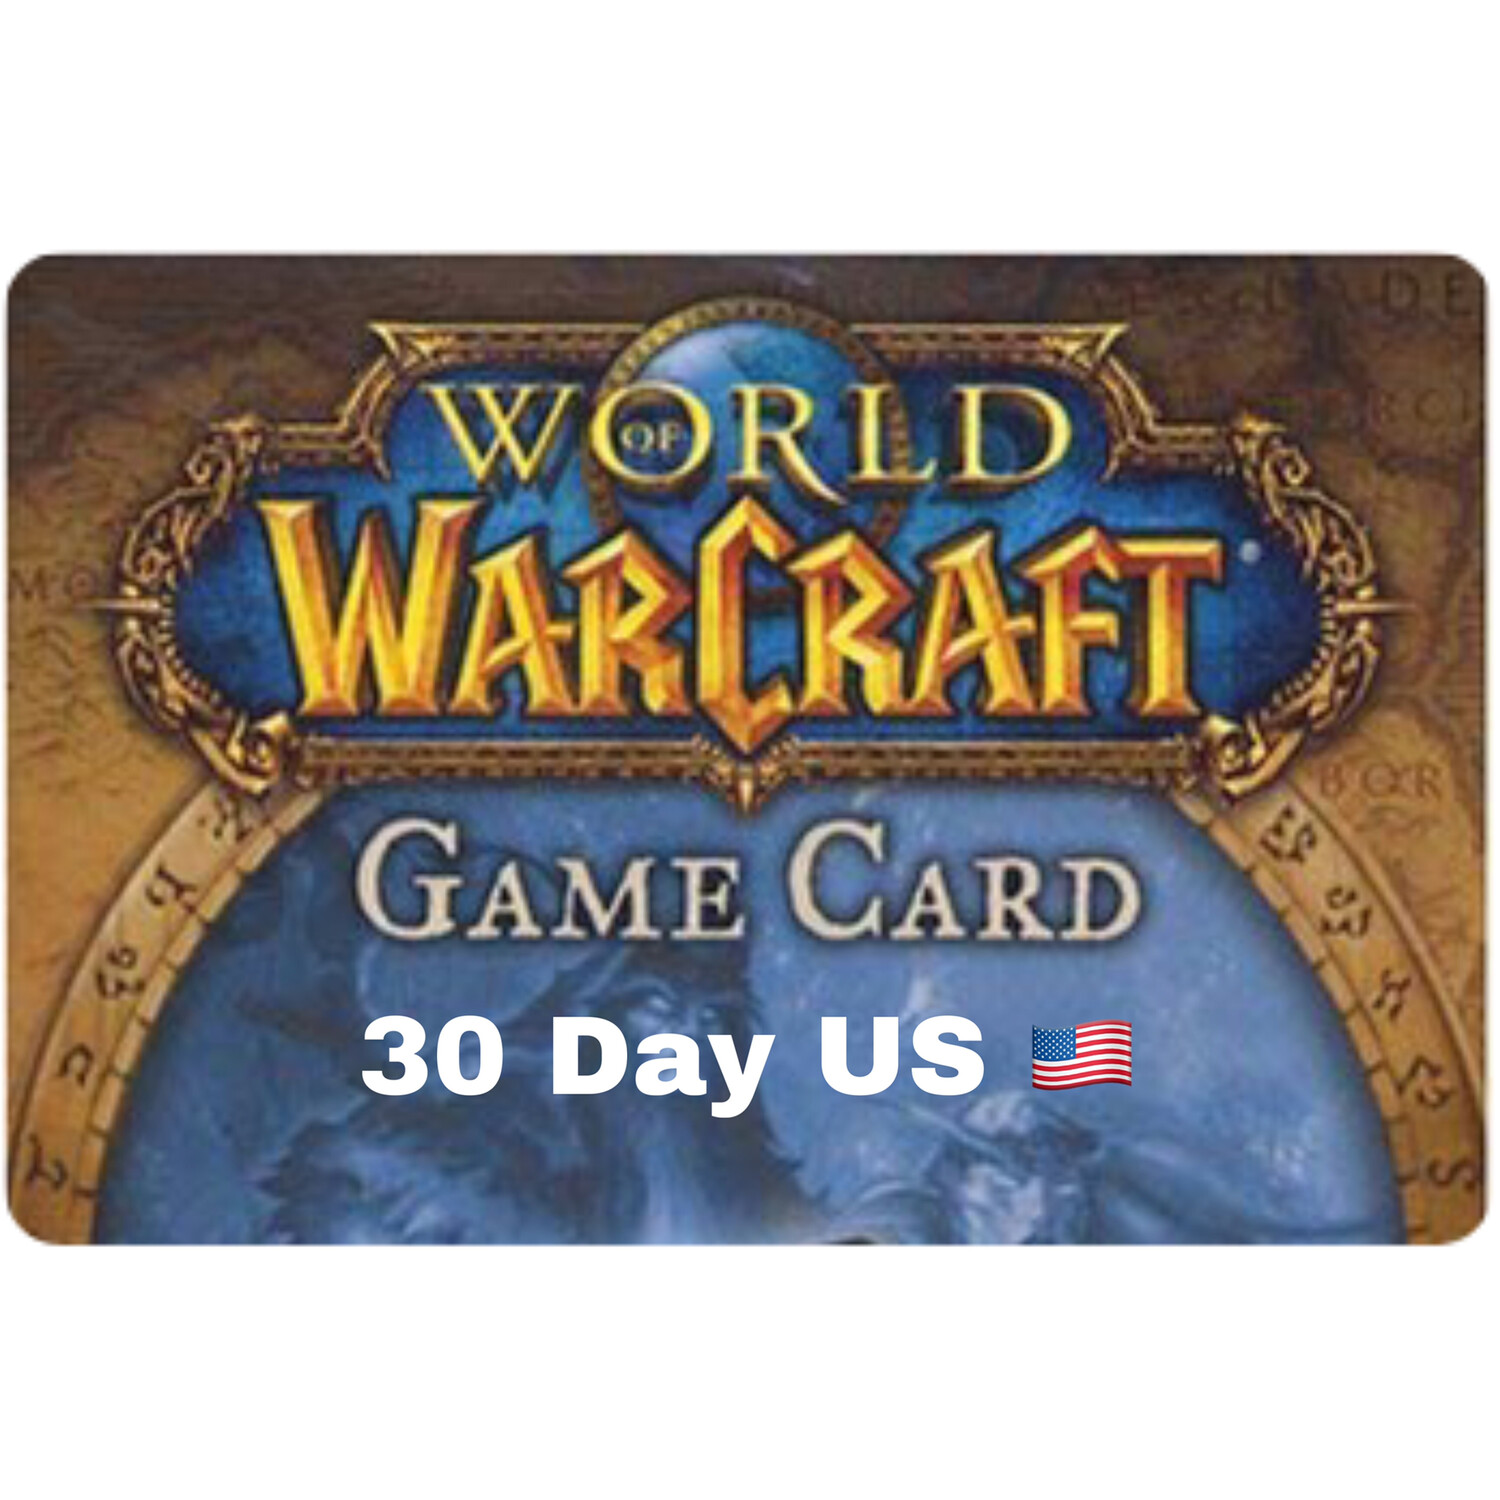 World of Warcraft 30 Day US Game Card